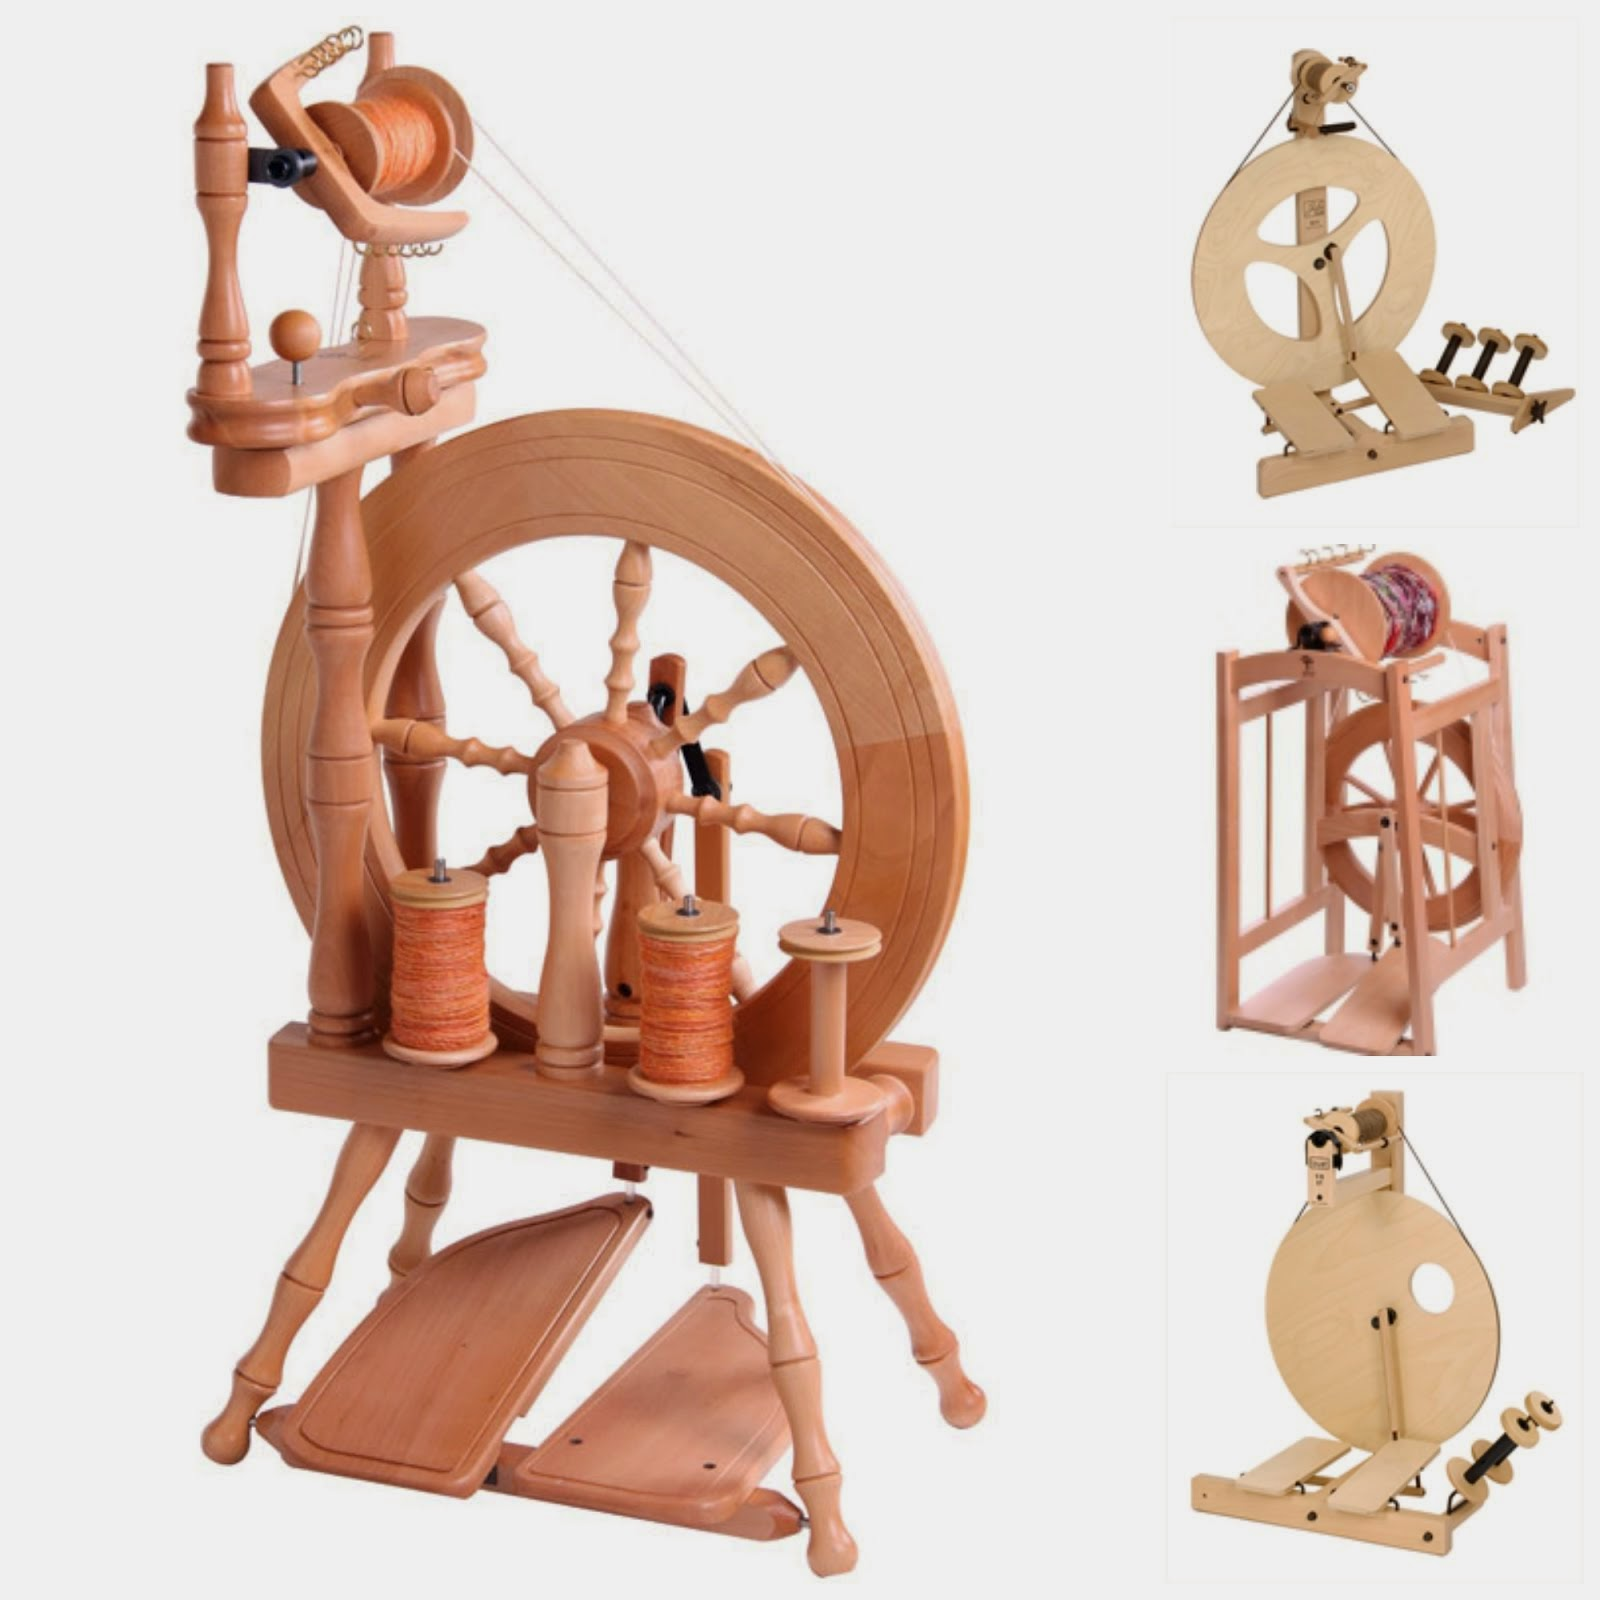 Take a free spinning lesson with every spinning wheel purchased at London-Wul!